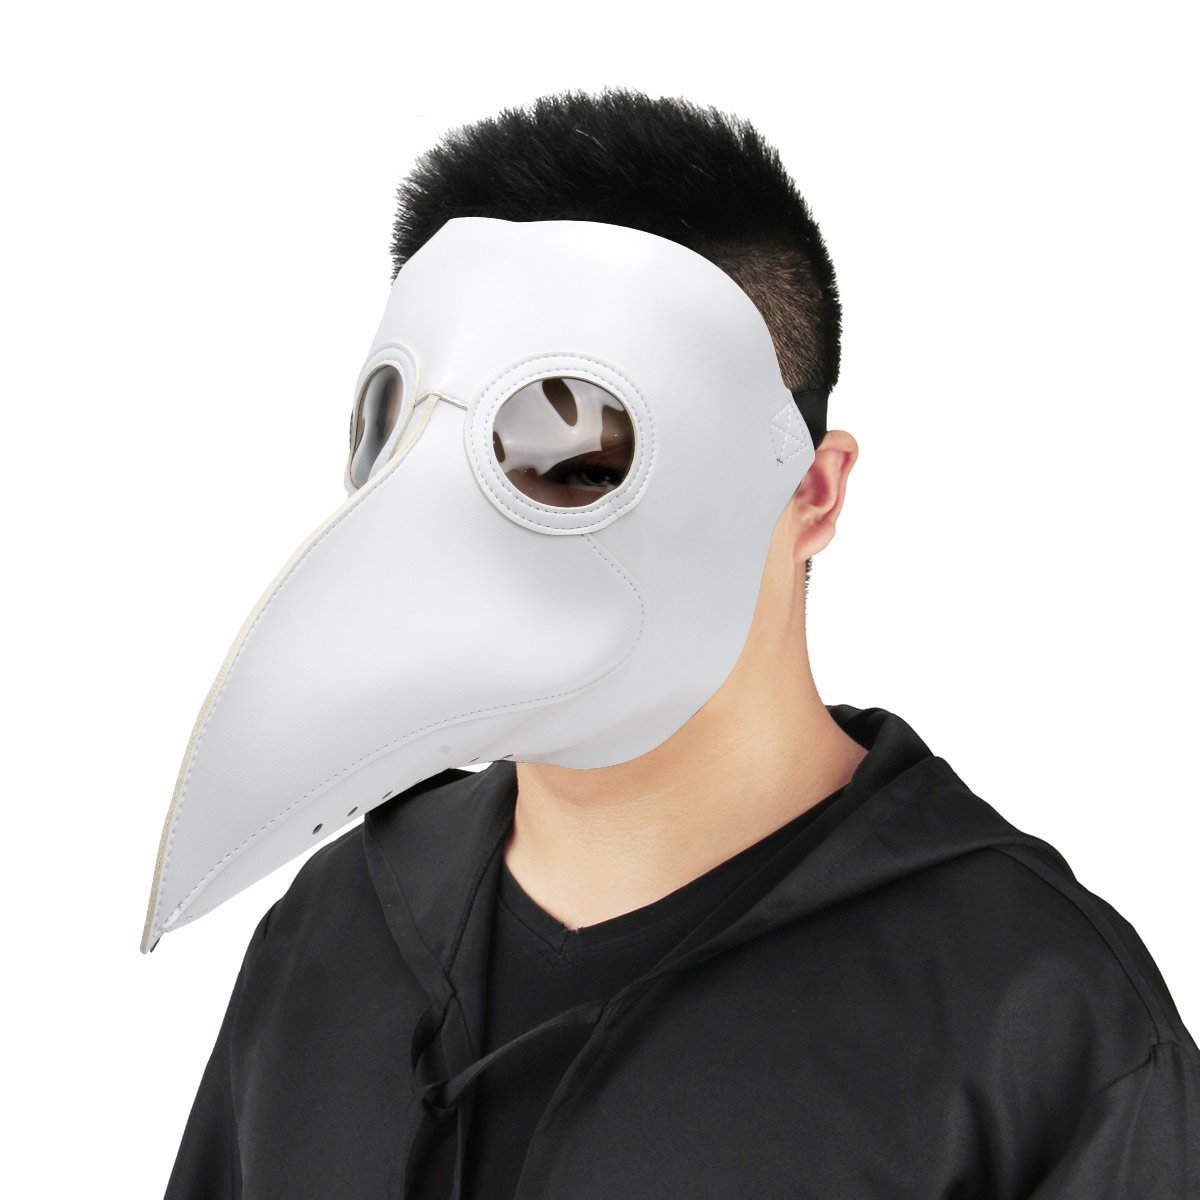 White Plague Doctor Mask Birds Long Nose Beak Faux Leather Steampunk Halloween Costume Props